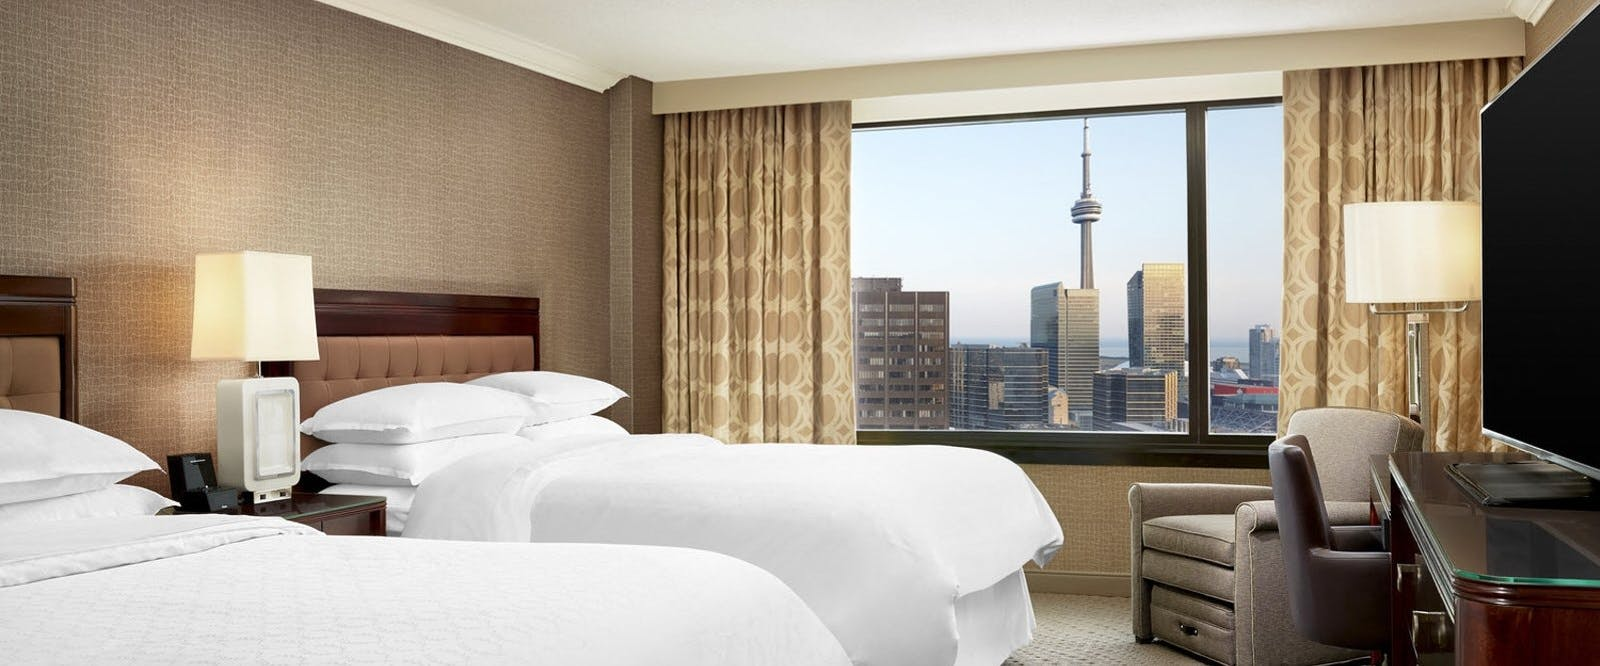 Double Bed Guest Room At Sheraton Centre Toronto Hotel